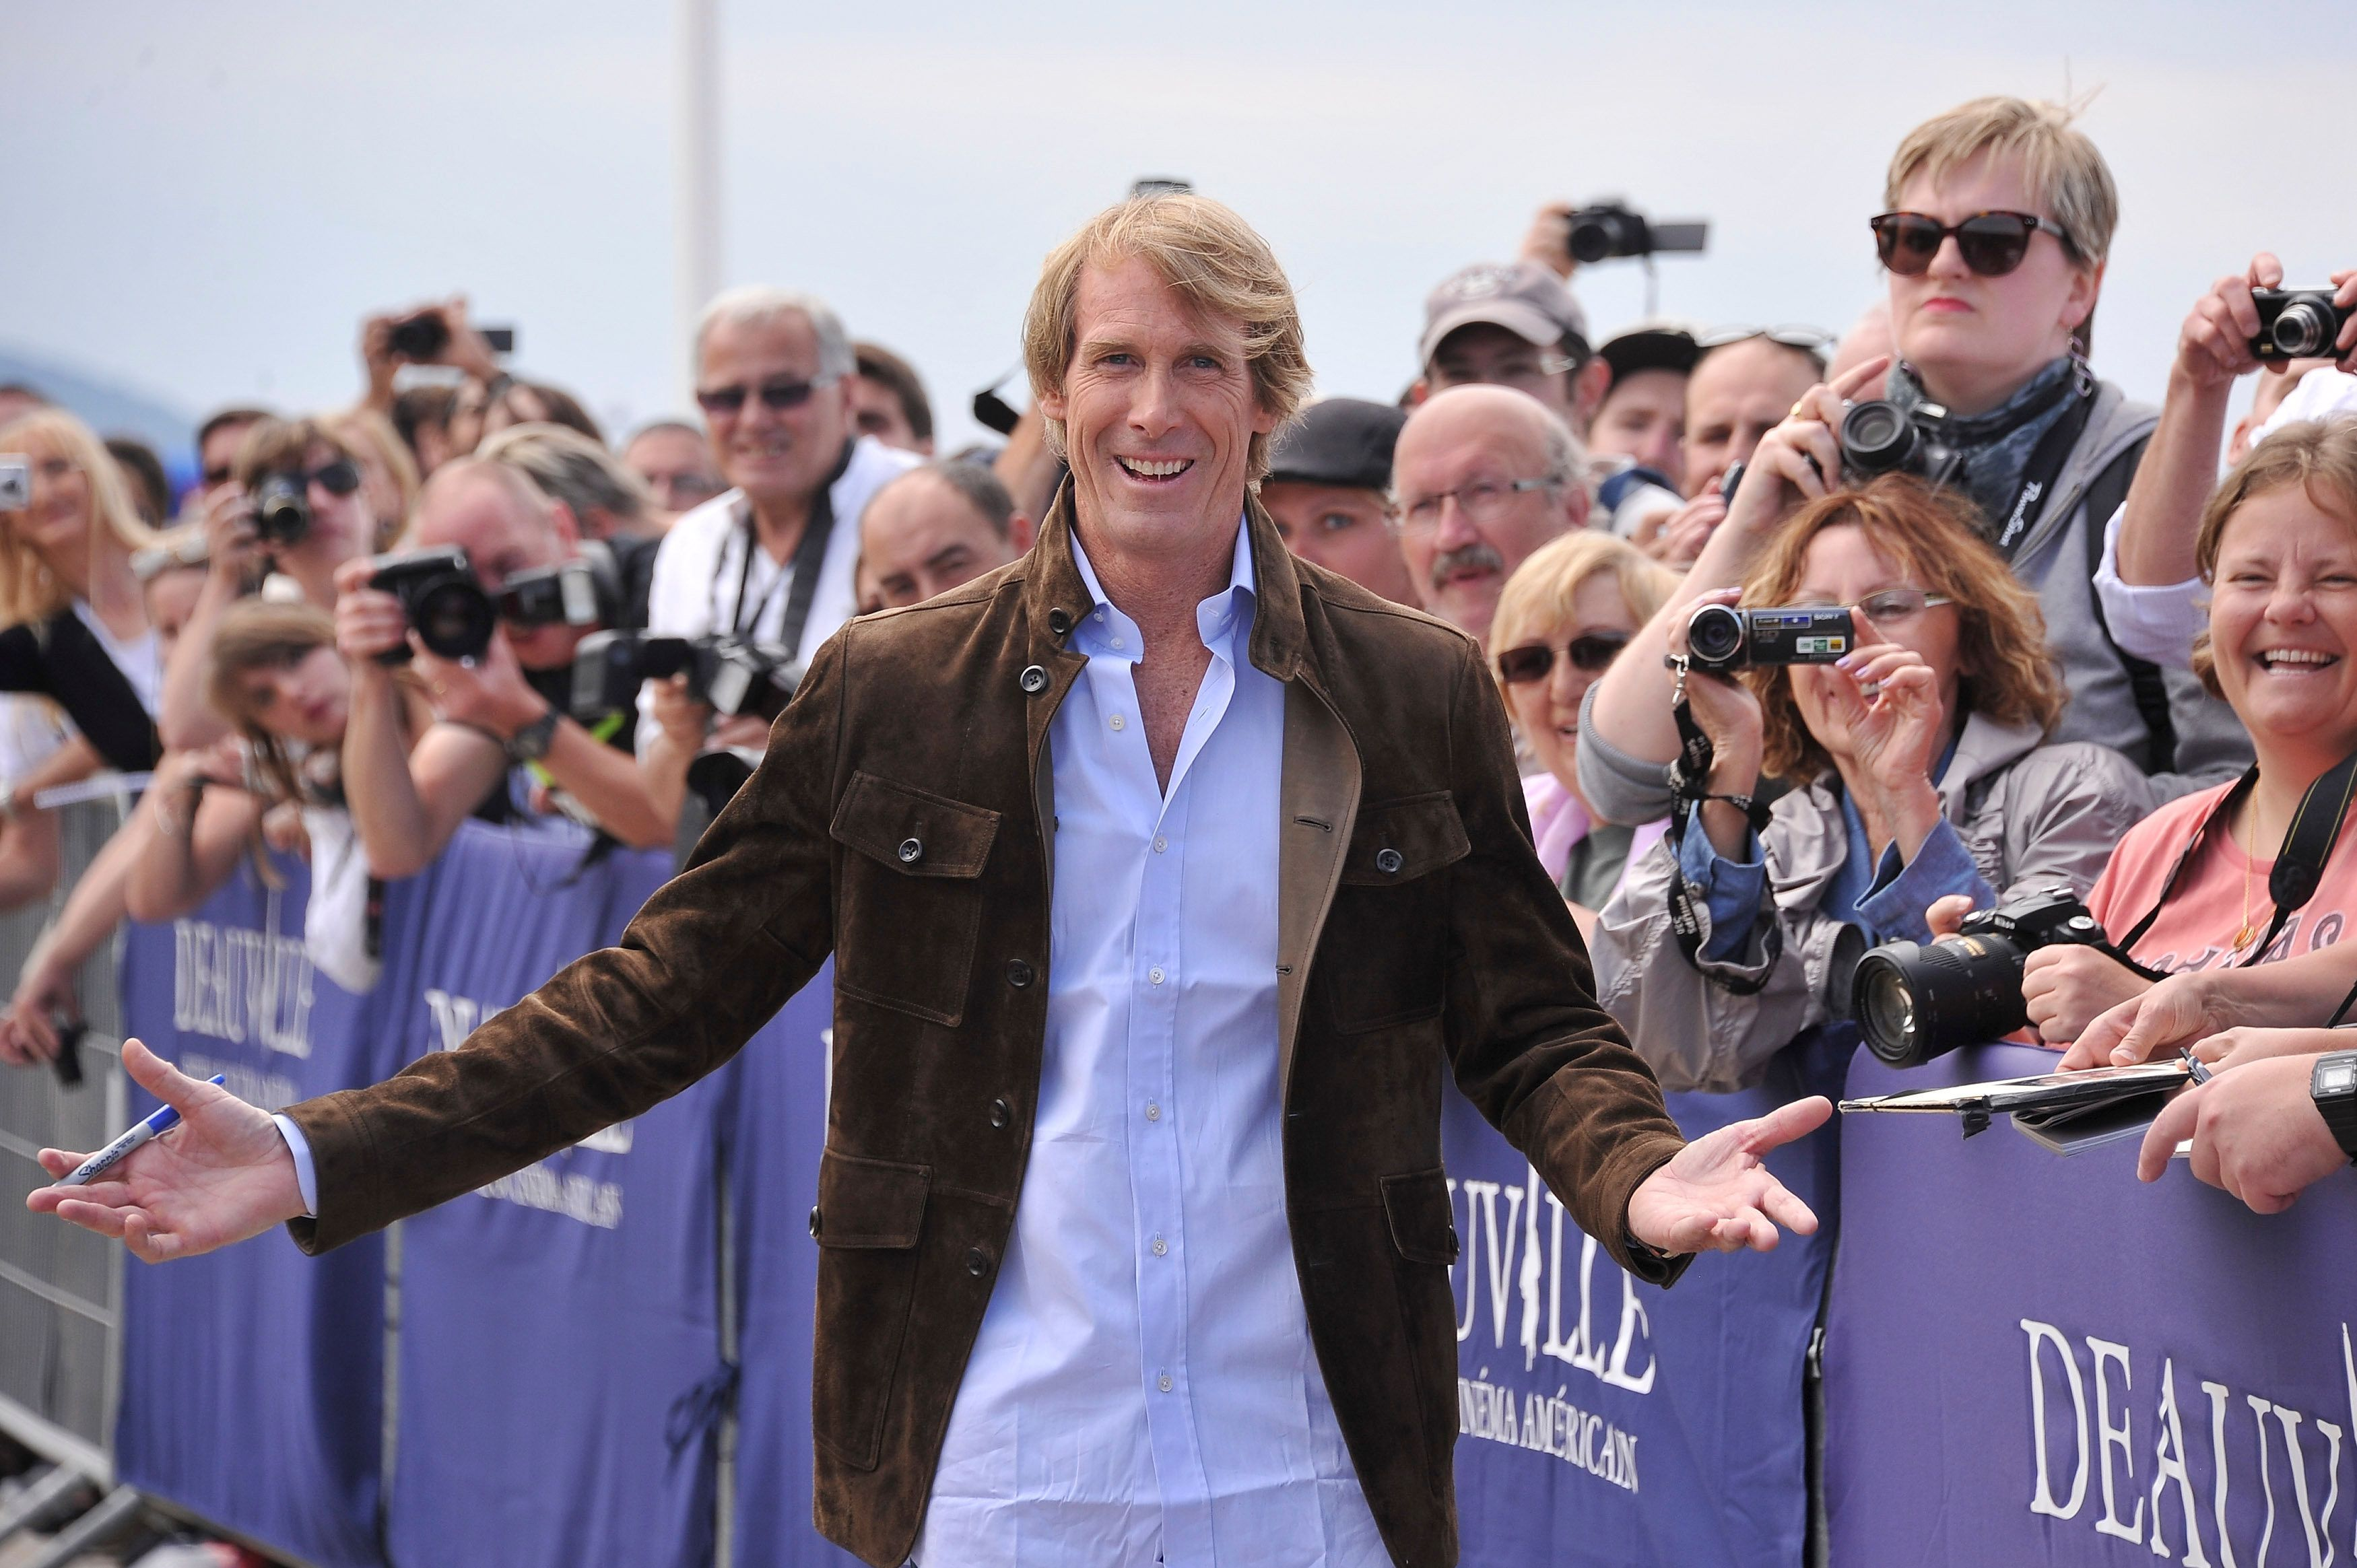 Michael Bay attends the Deauville American Film Festival on Sept. 11, 2015, in France.